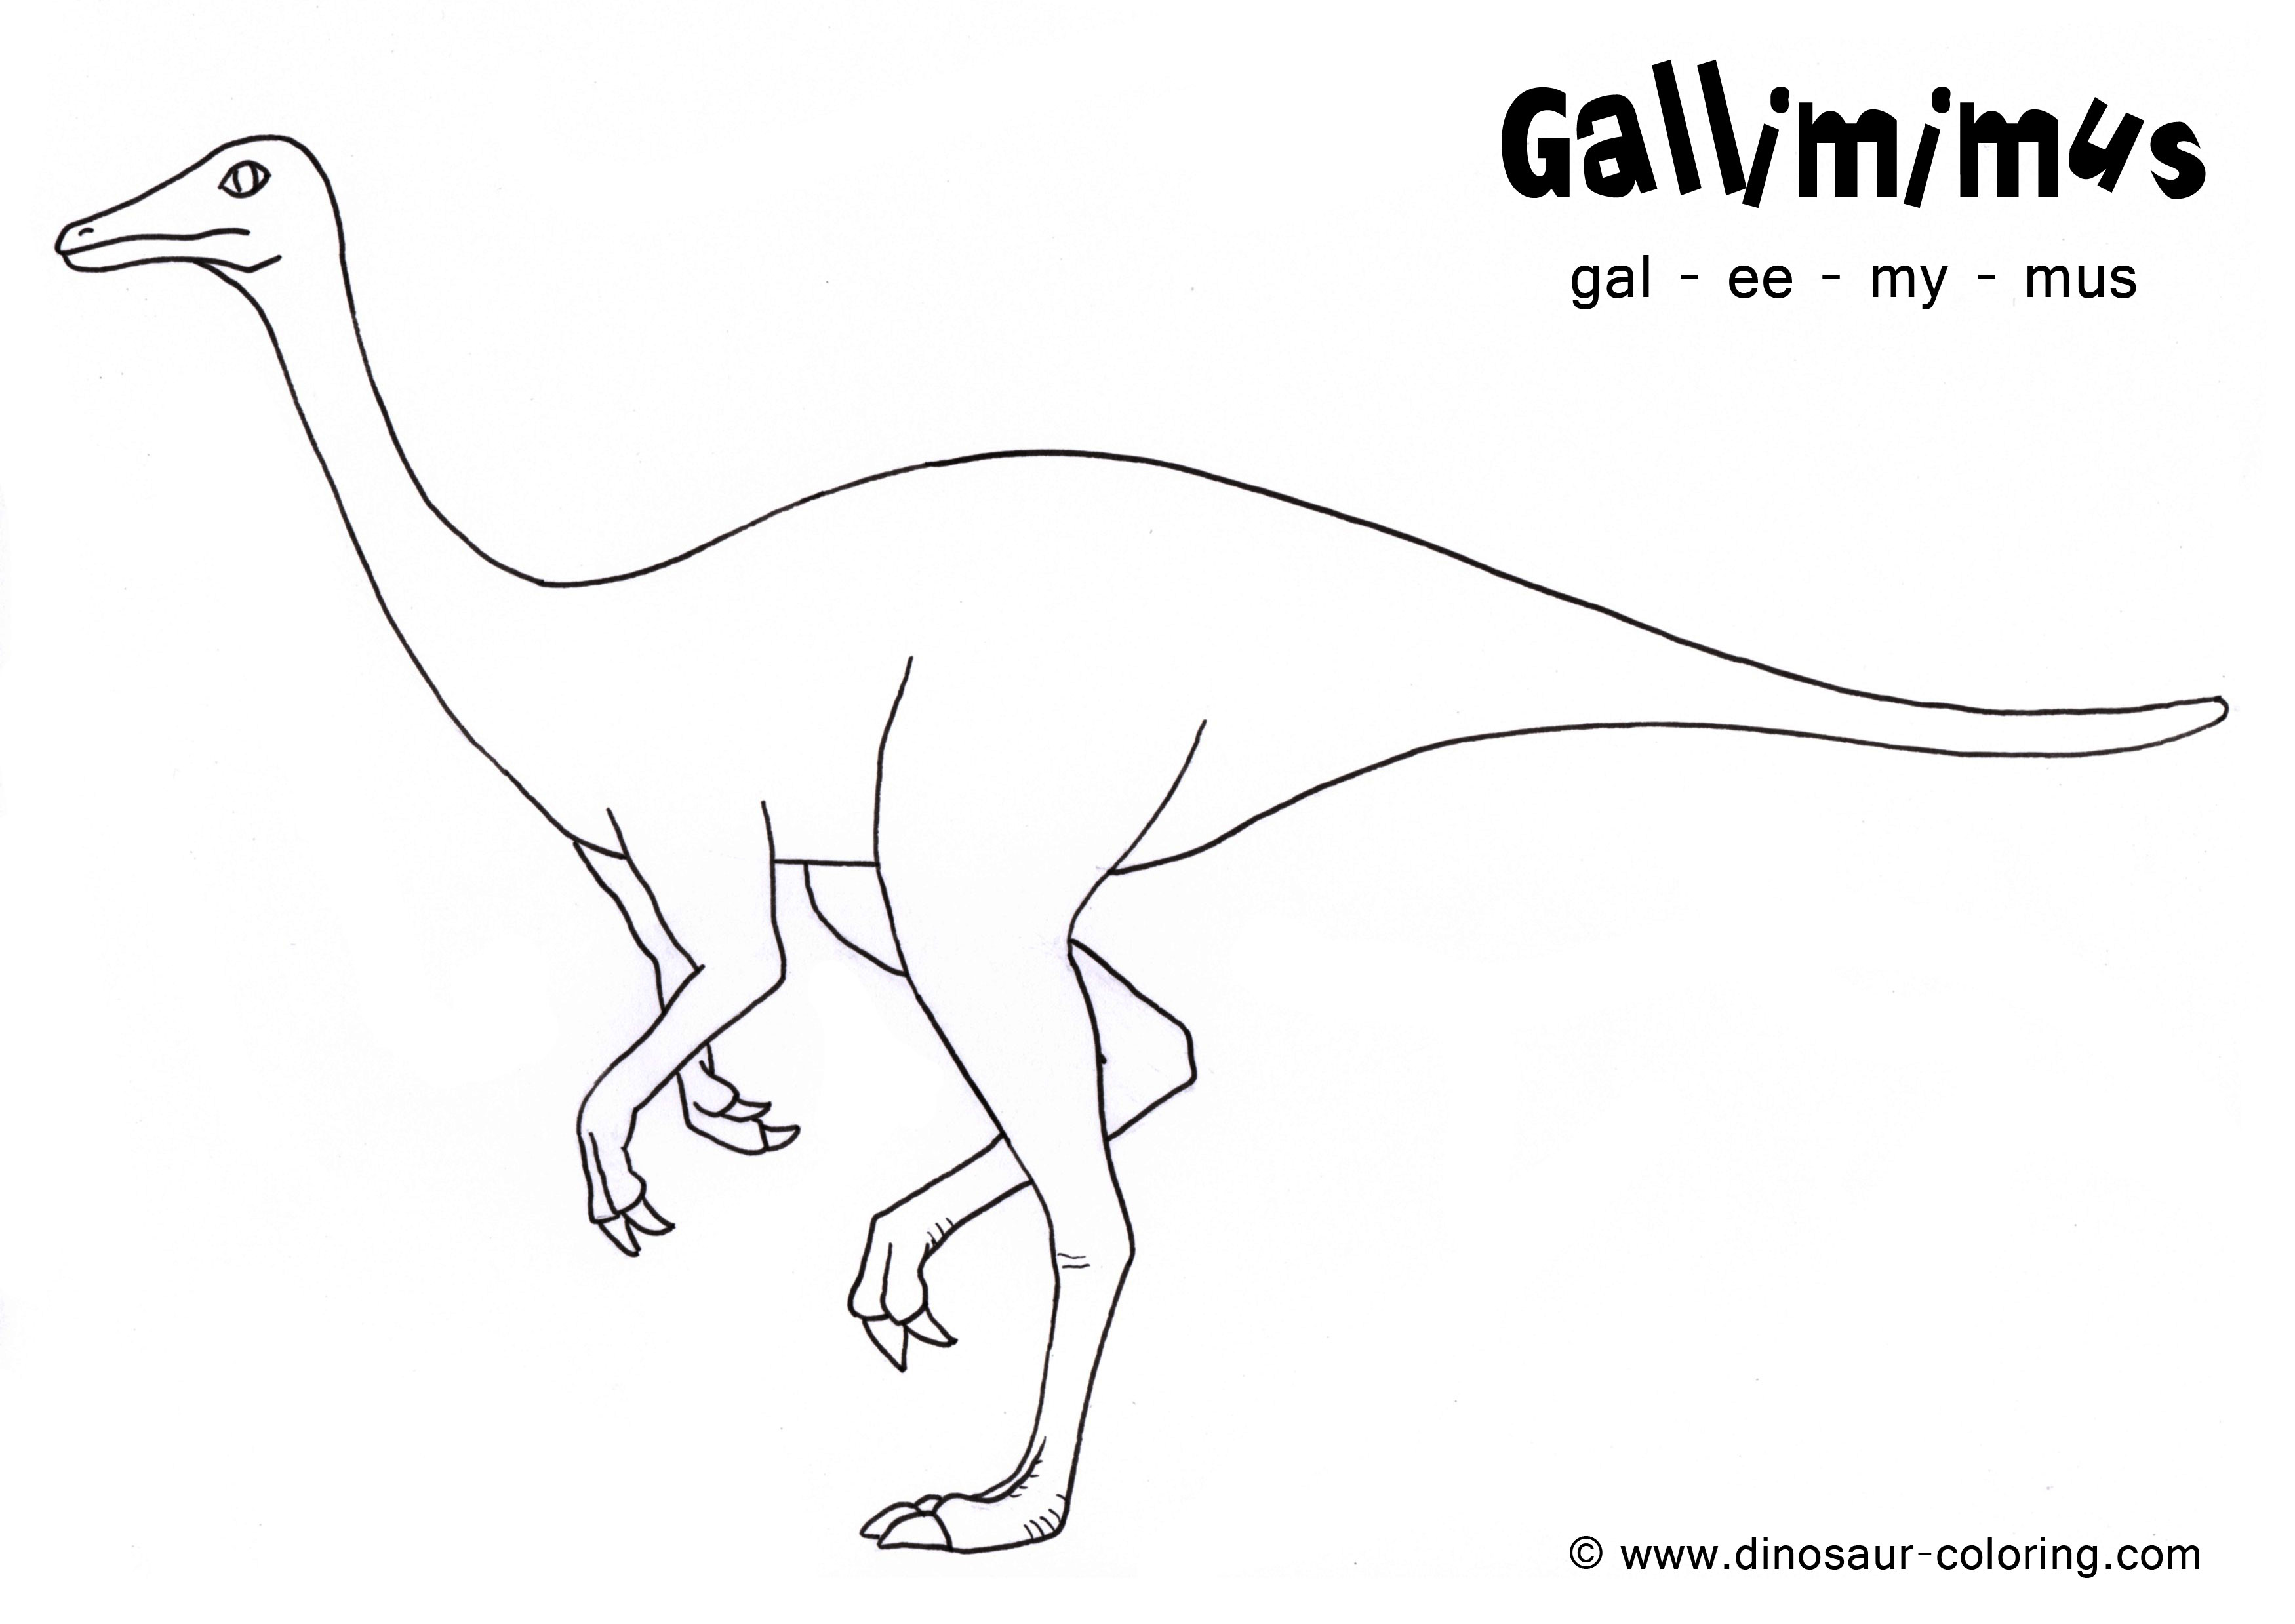 Dinosaur coloring #2, Download drawings